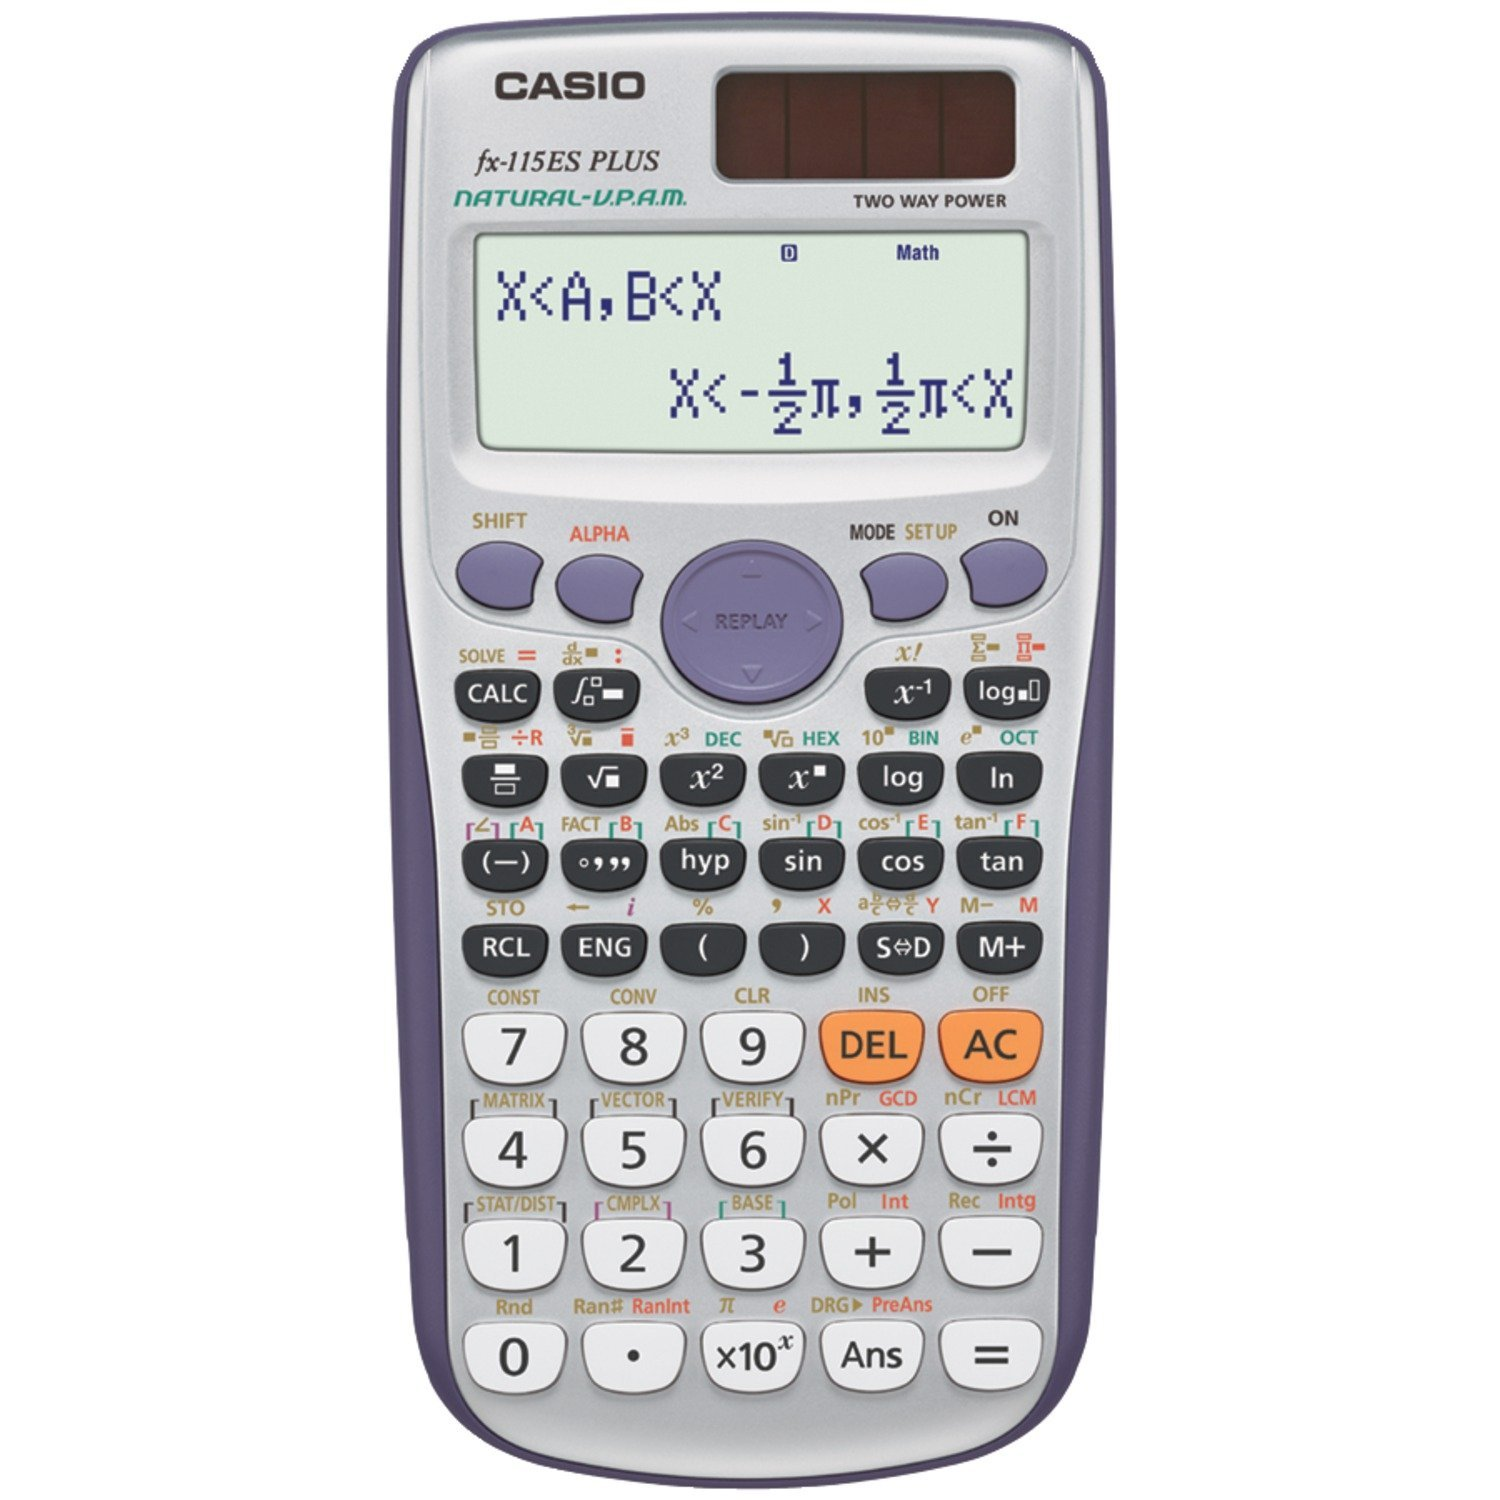 Casio fx-115ES PLUS Engineering/Scientific Calculator that has enhanced features and also a multi-line display allows